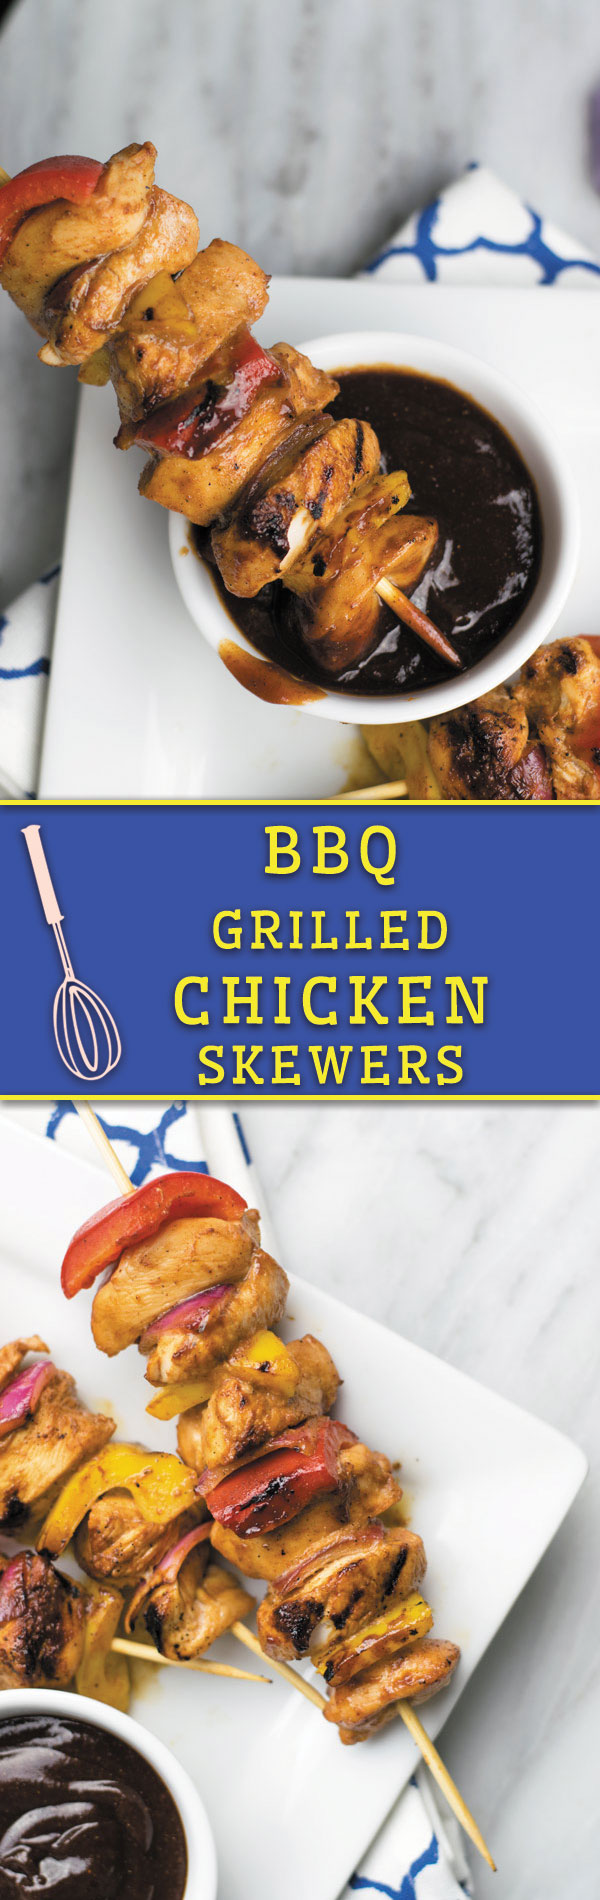 These Grilled BBQ CHICKEN SKEWERS are moist, perfectly seasoned and so good for summer grilling! OR make in oven and serve with a light salad!